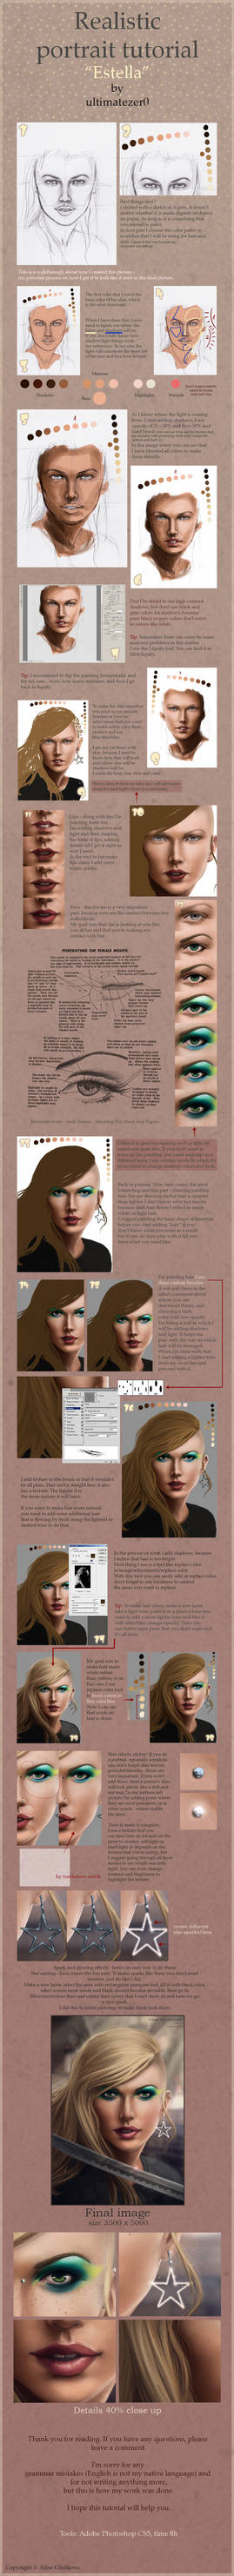 Realistic portrait tutorial by nom-nom-pancake